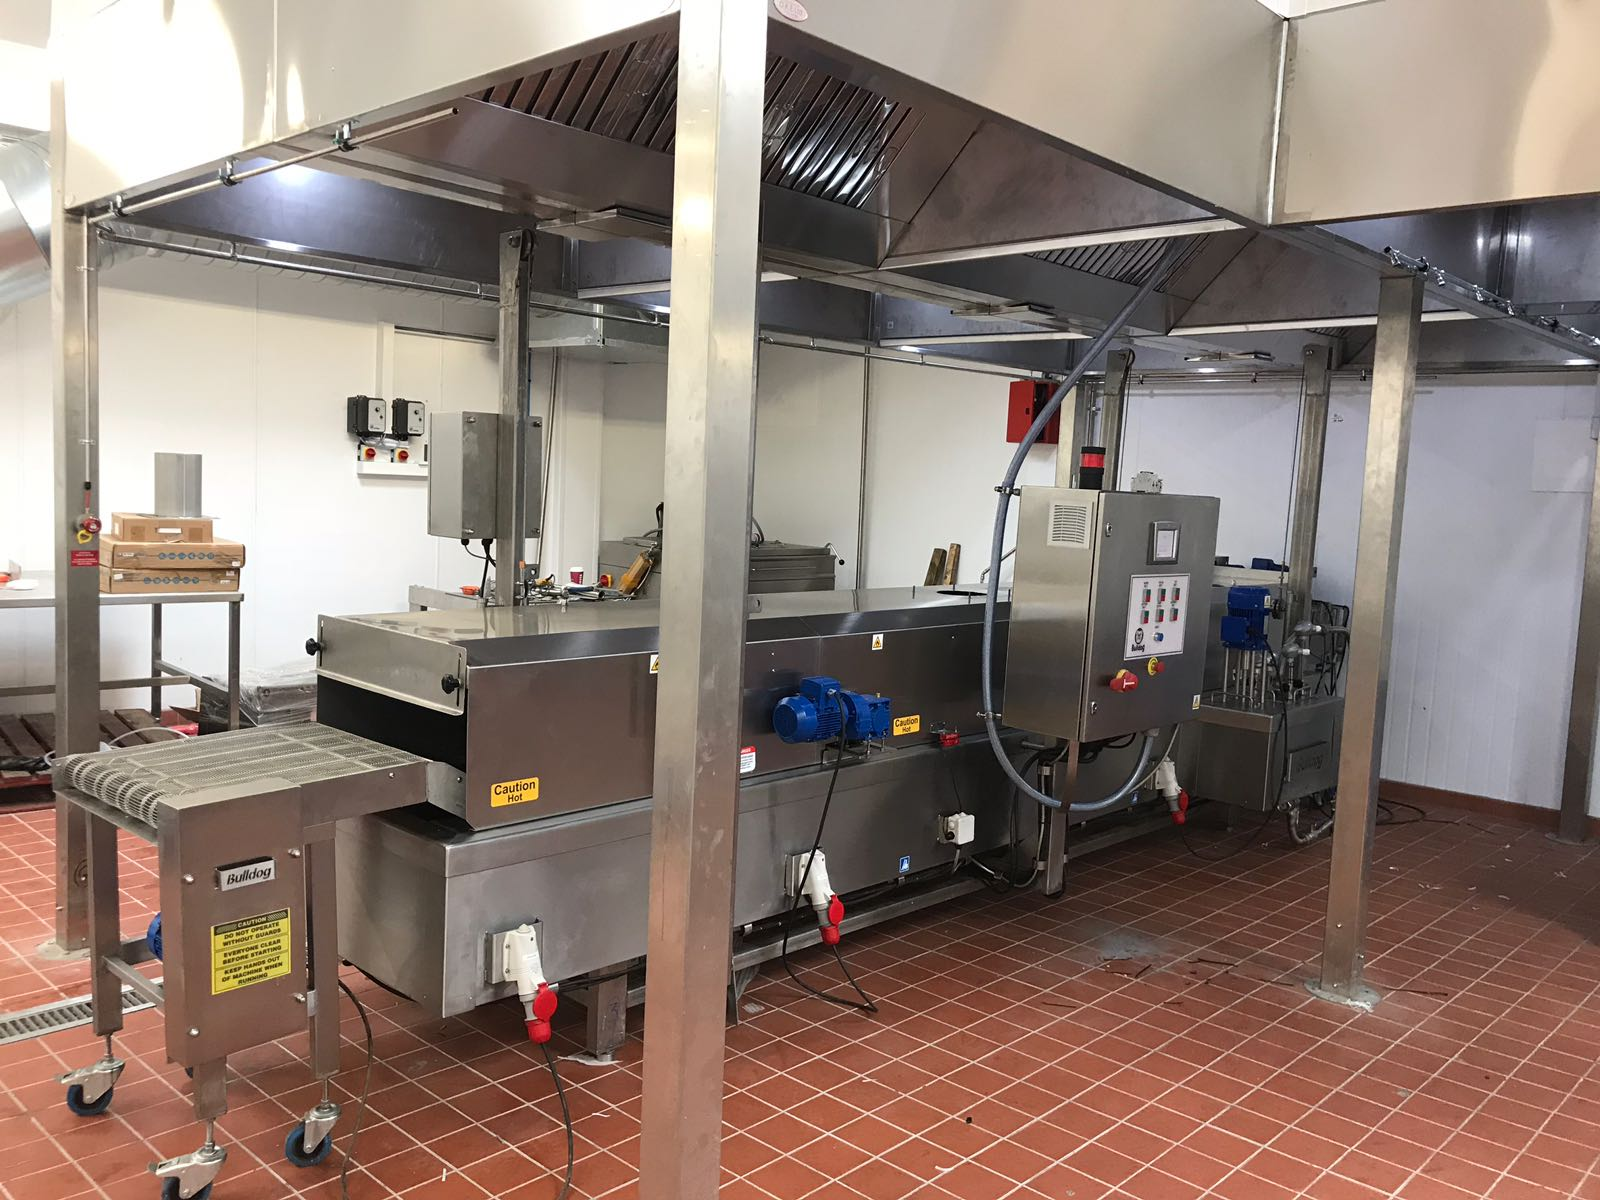 Bulldog 3400/600 Electric Fryer